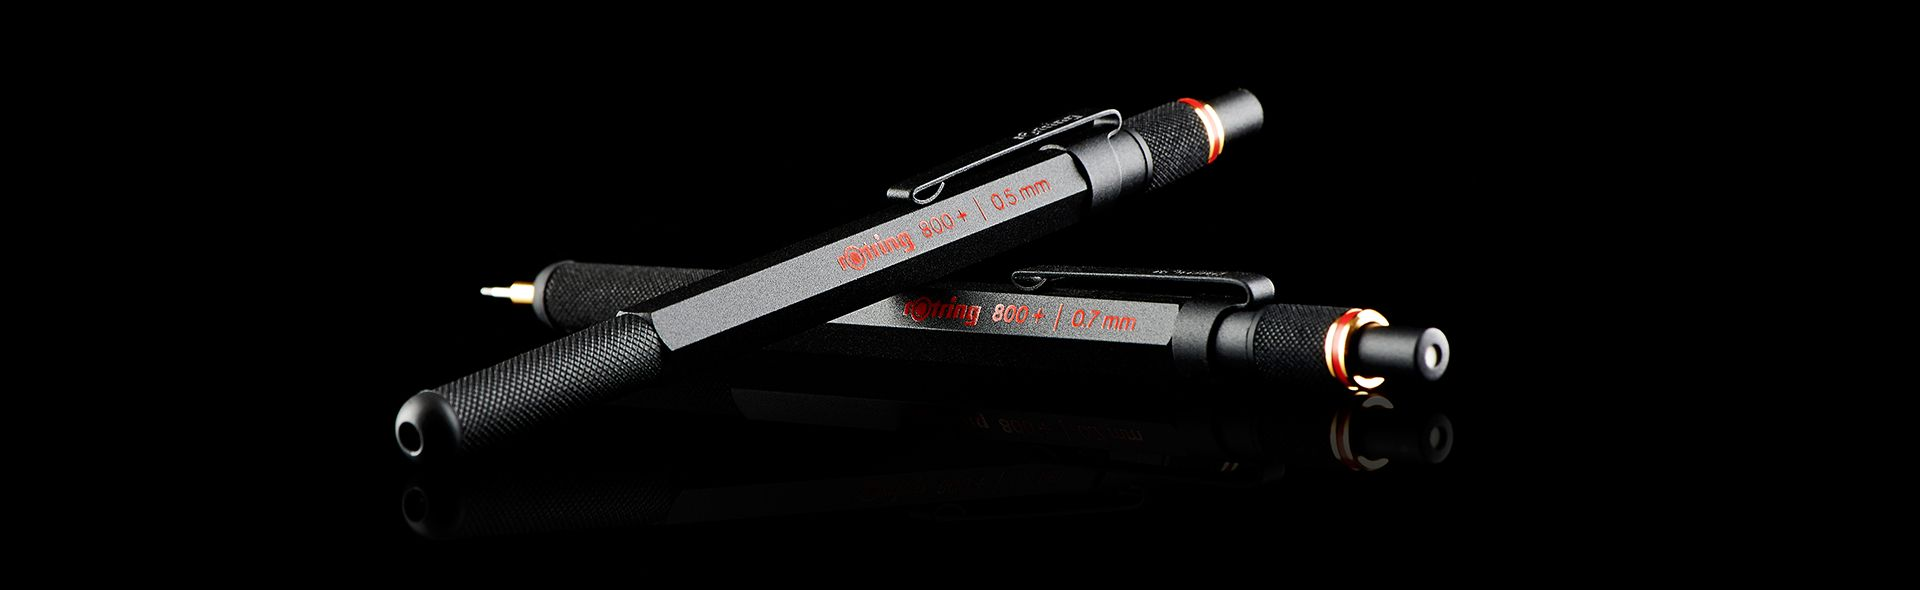 rotring-800-mechanical-stylus-4